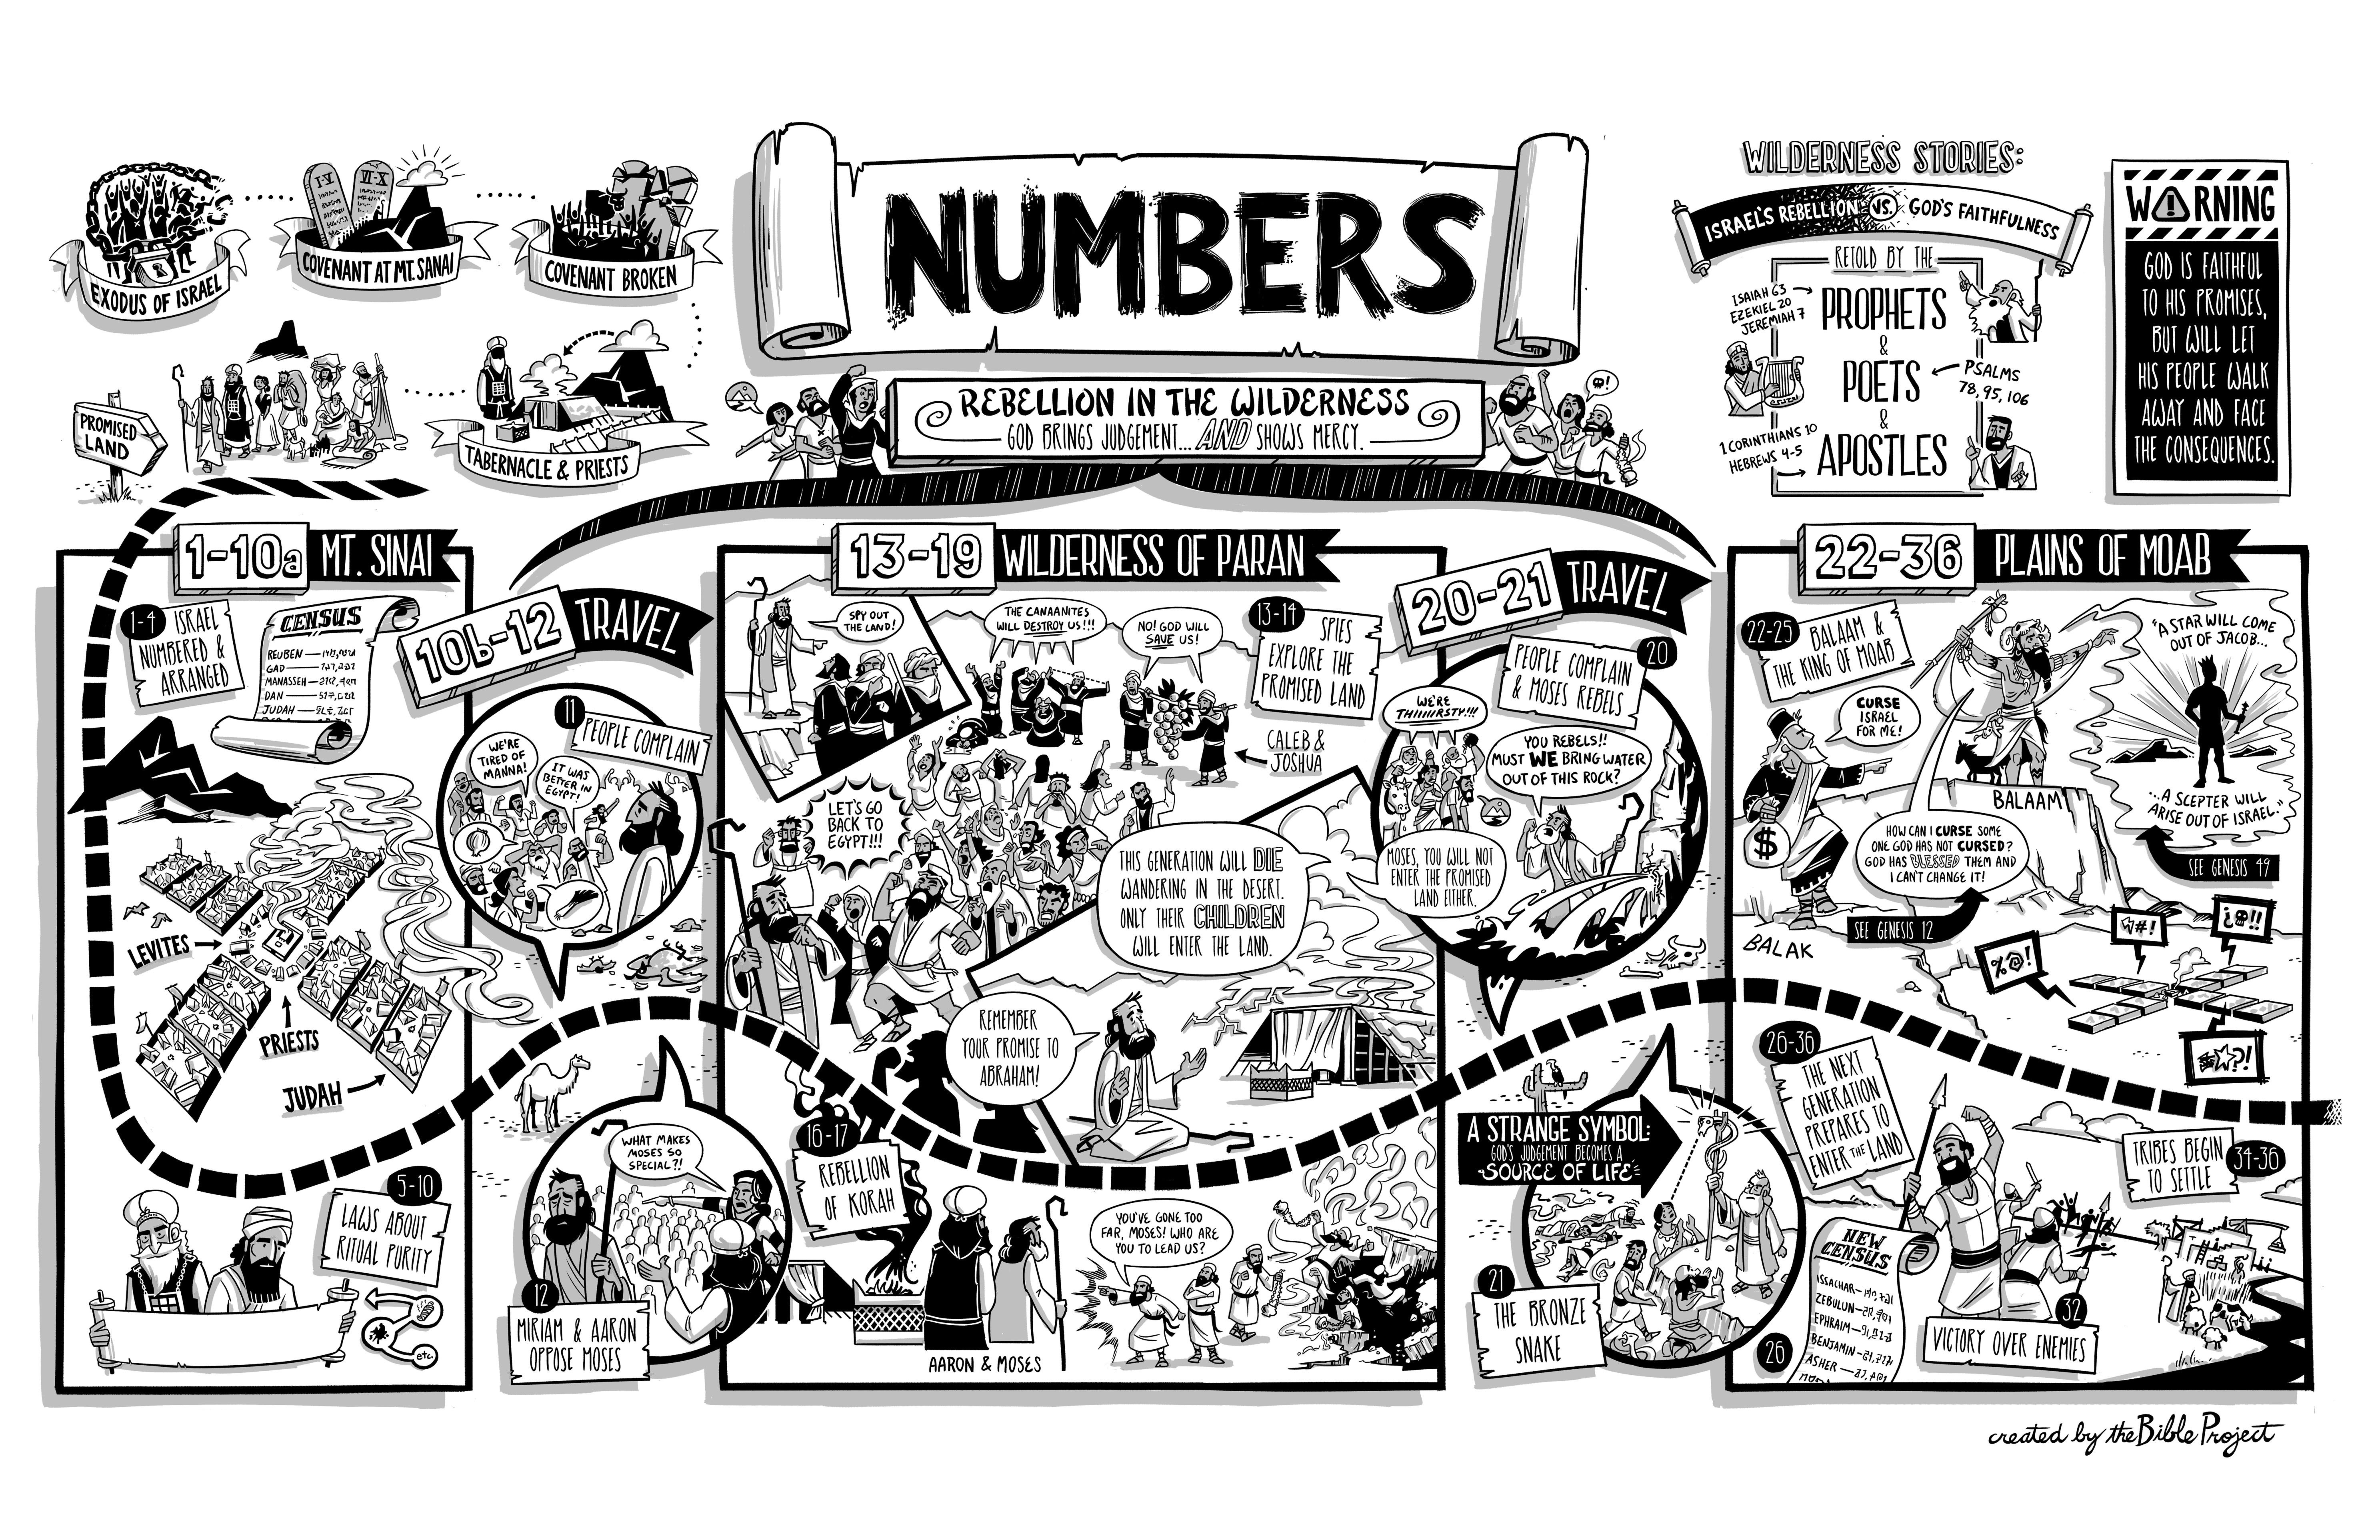 Learn the Biblical Meaning of Numbers in the Bible